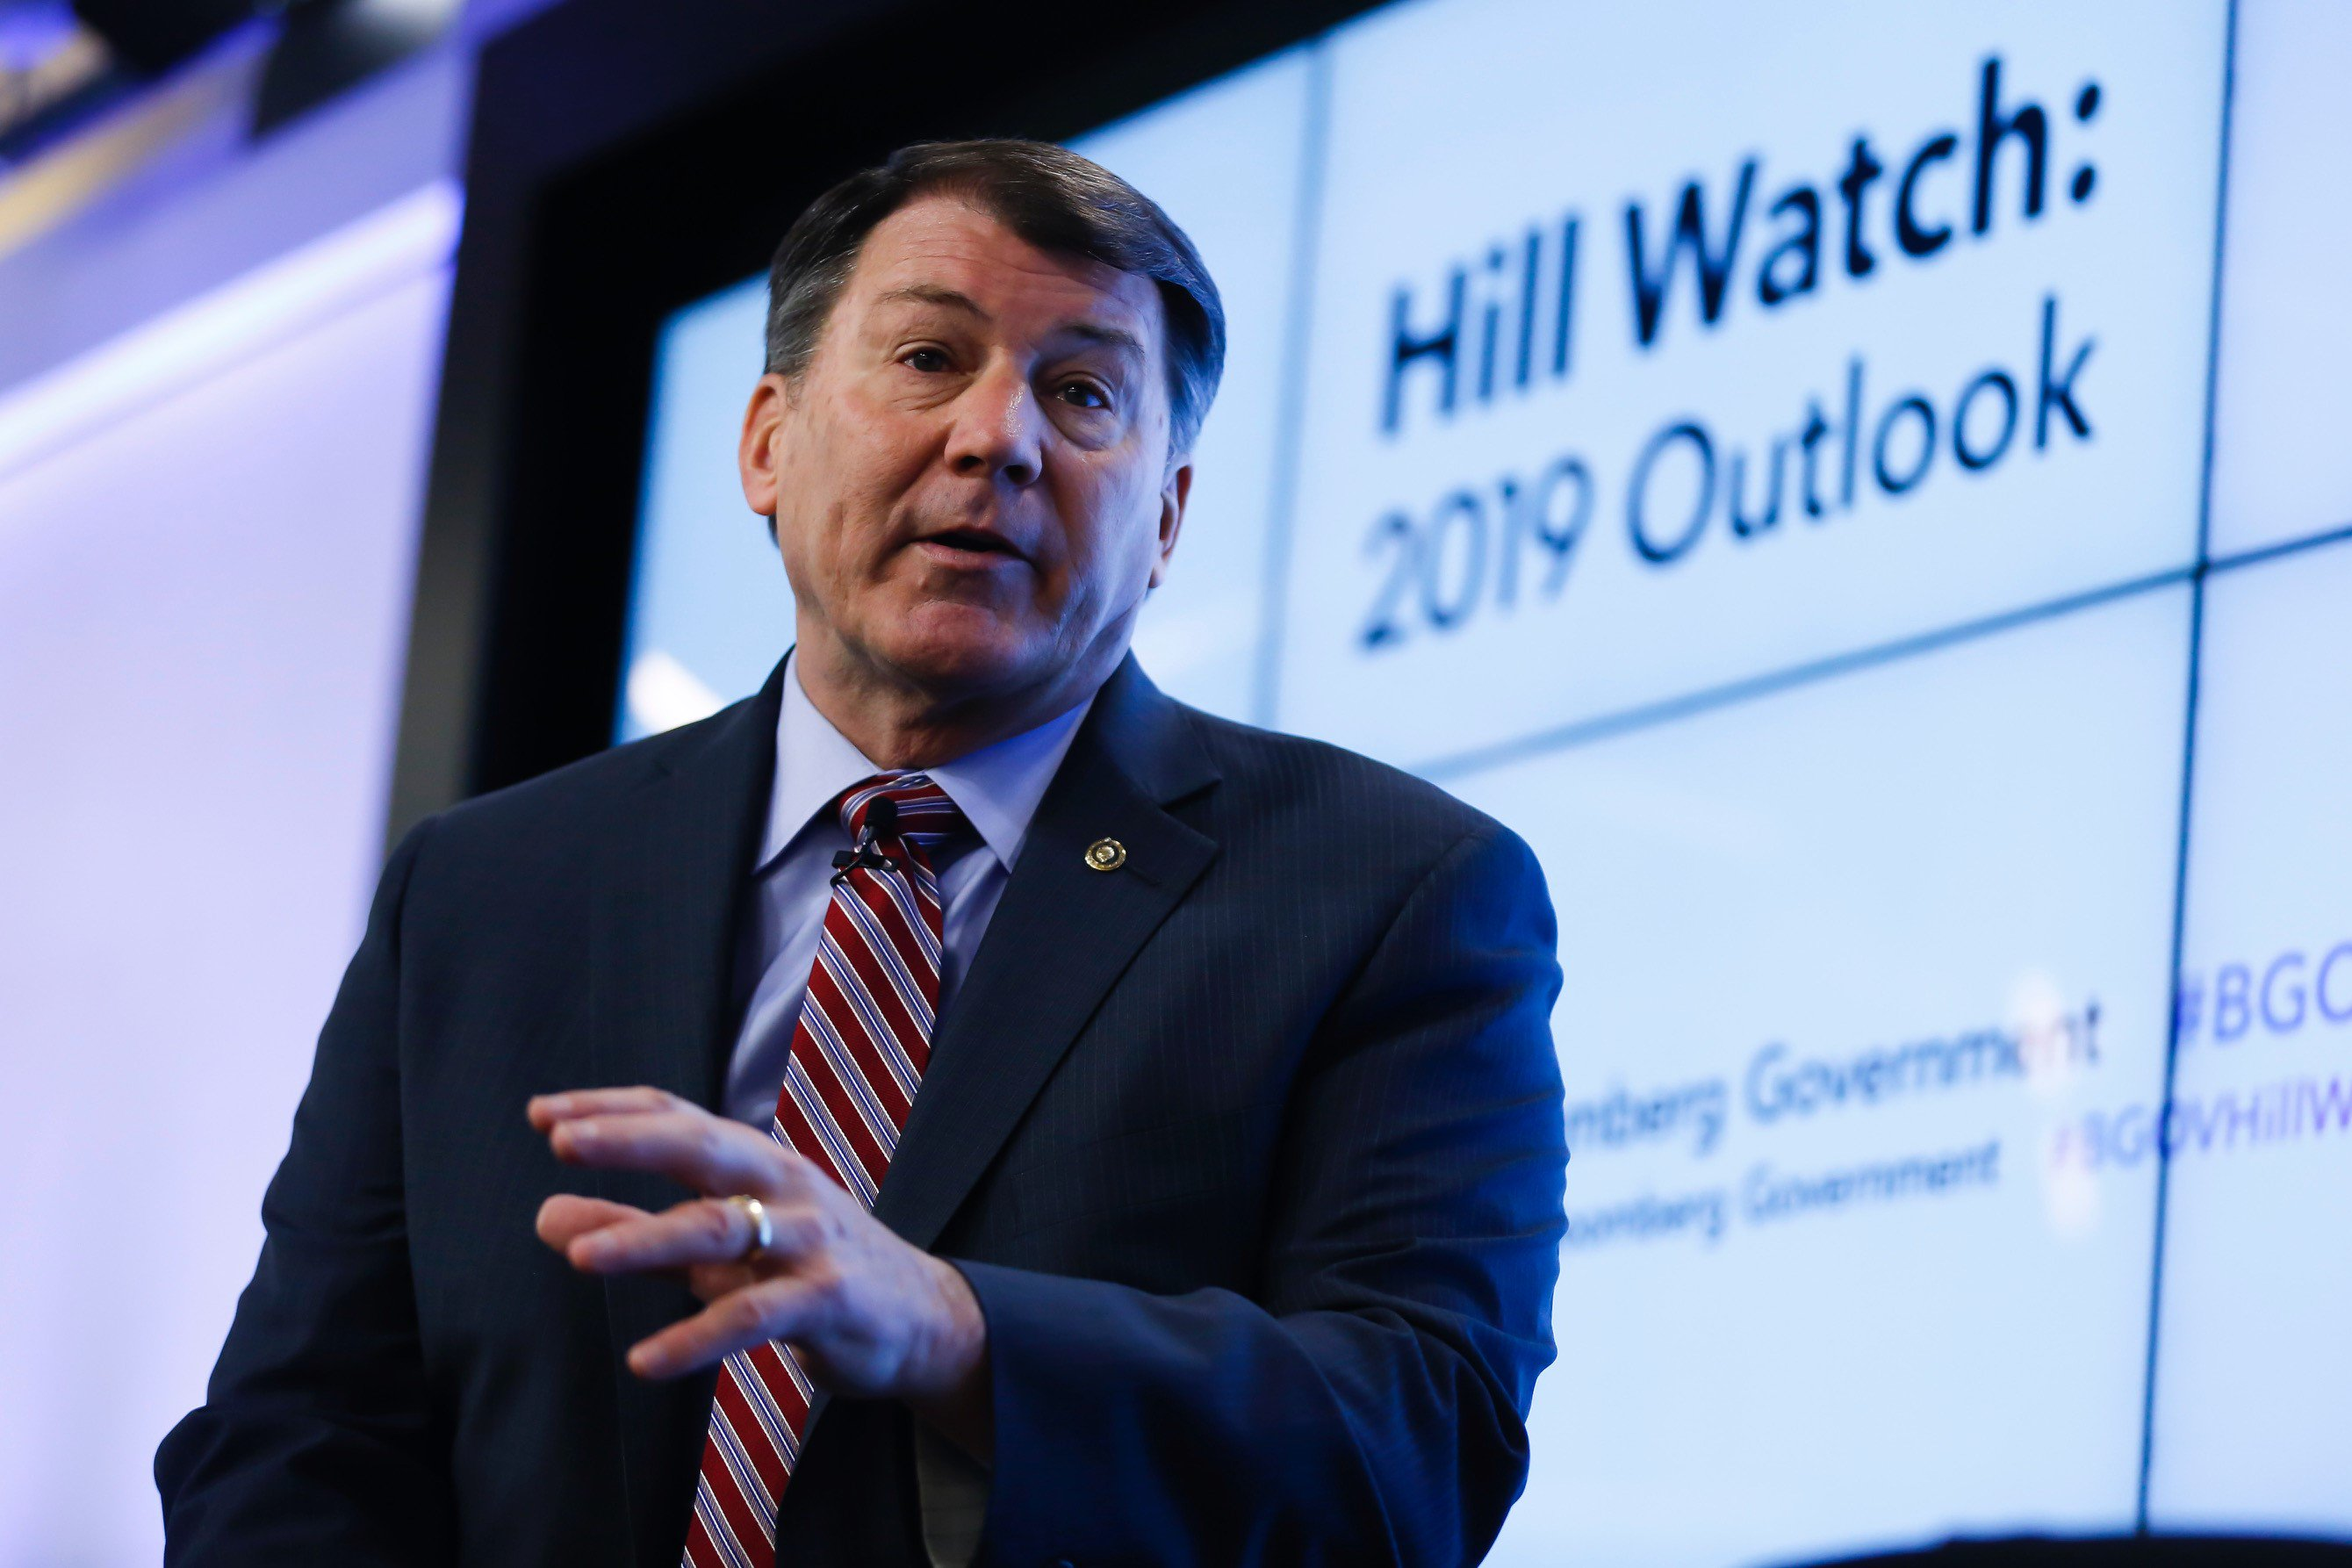 Sen. Mike Rounds: Indian Health Service fails its trust and treaty obligations